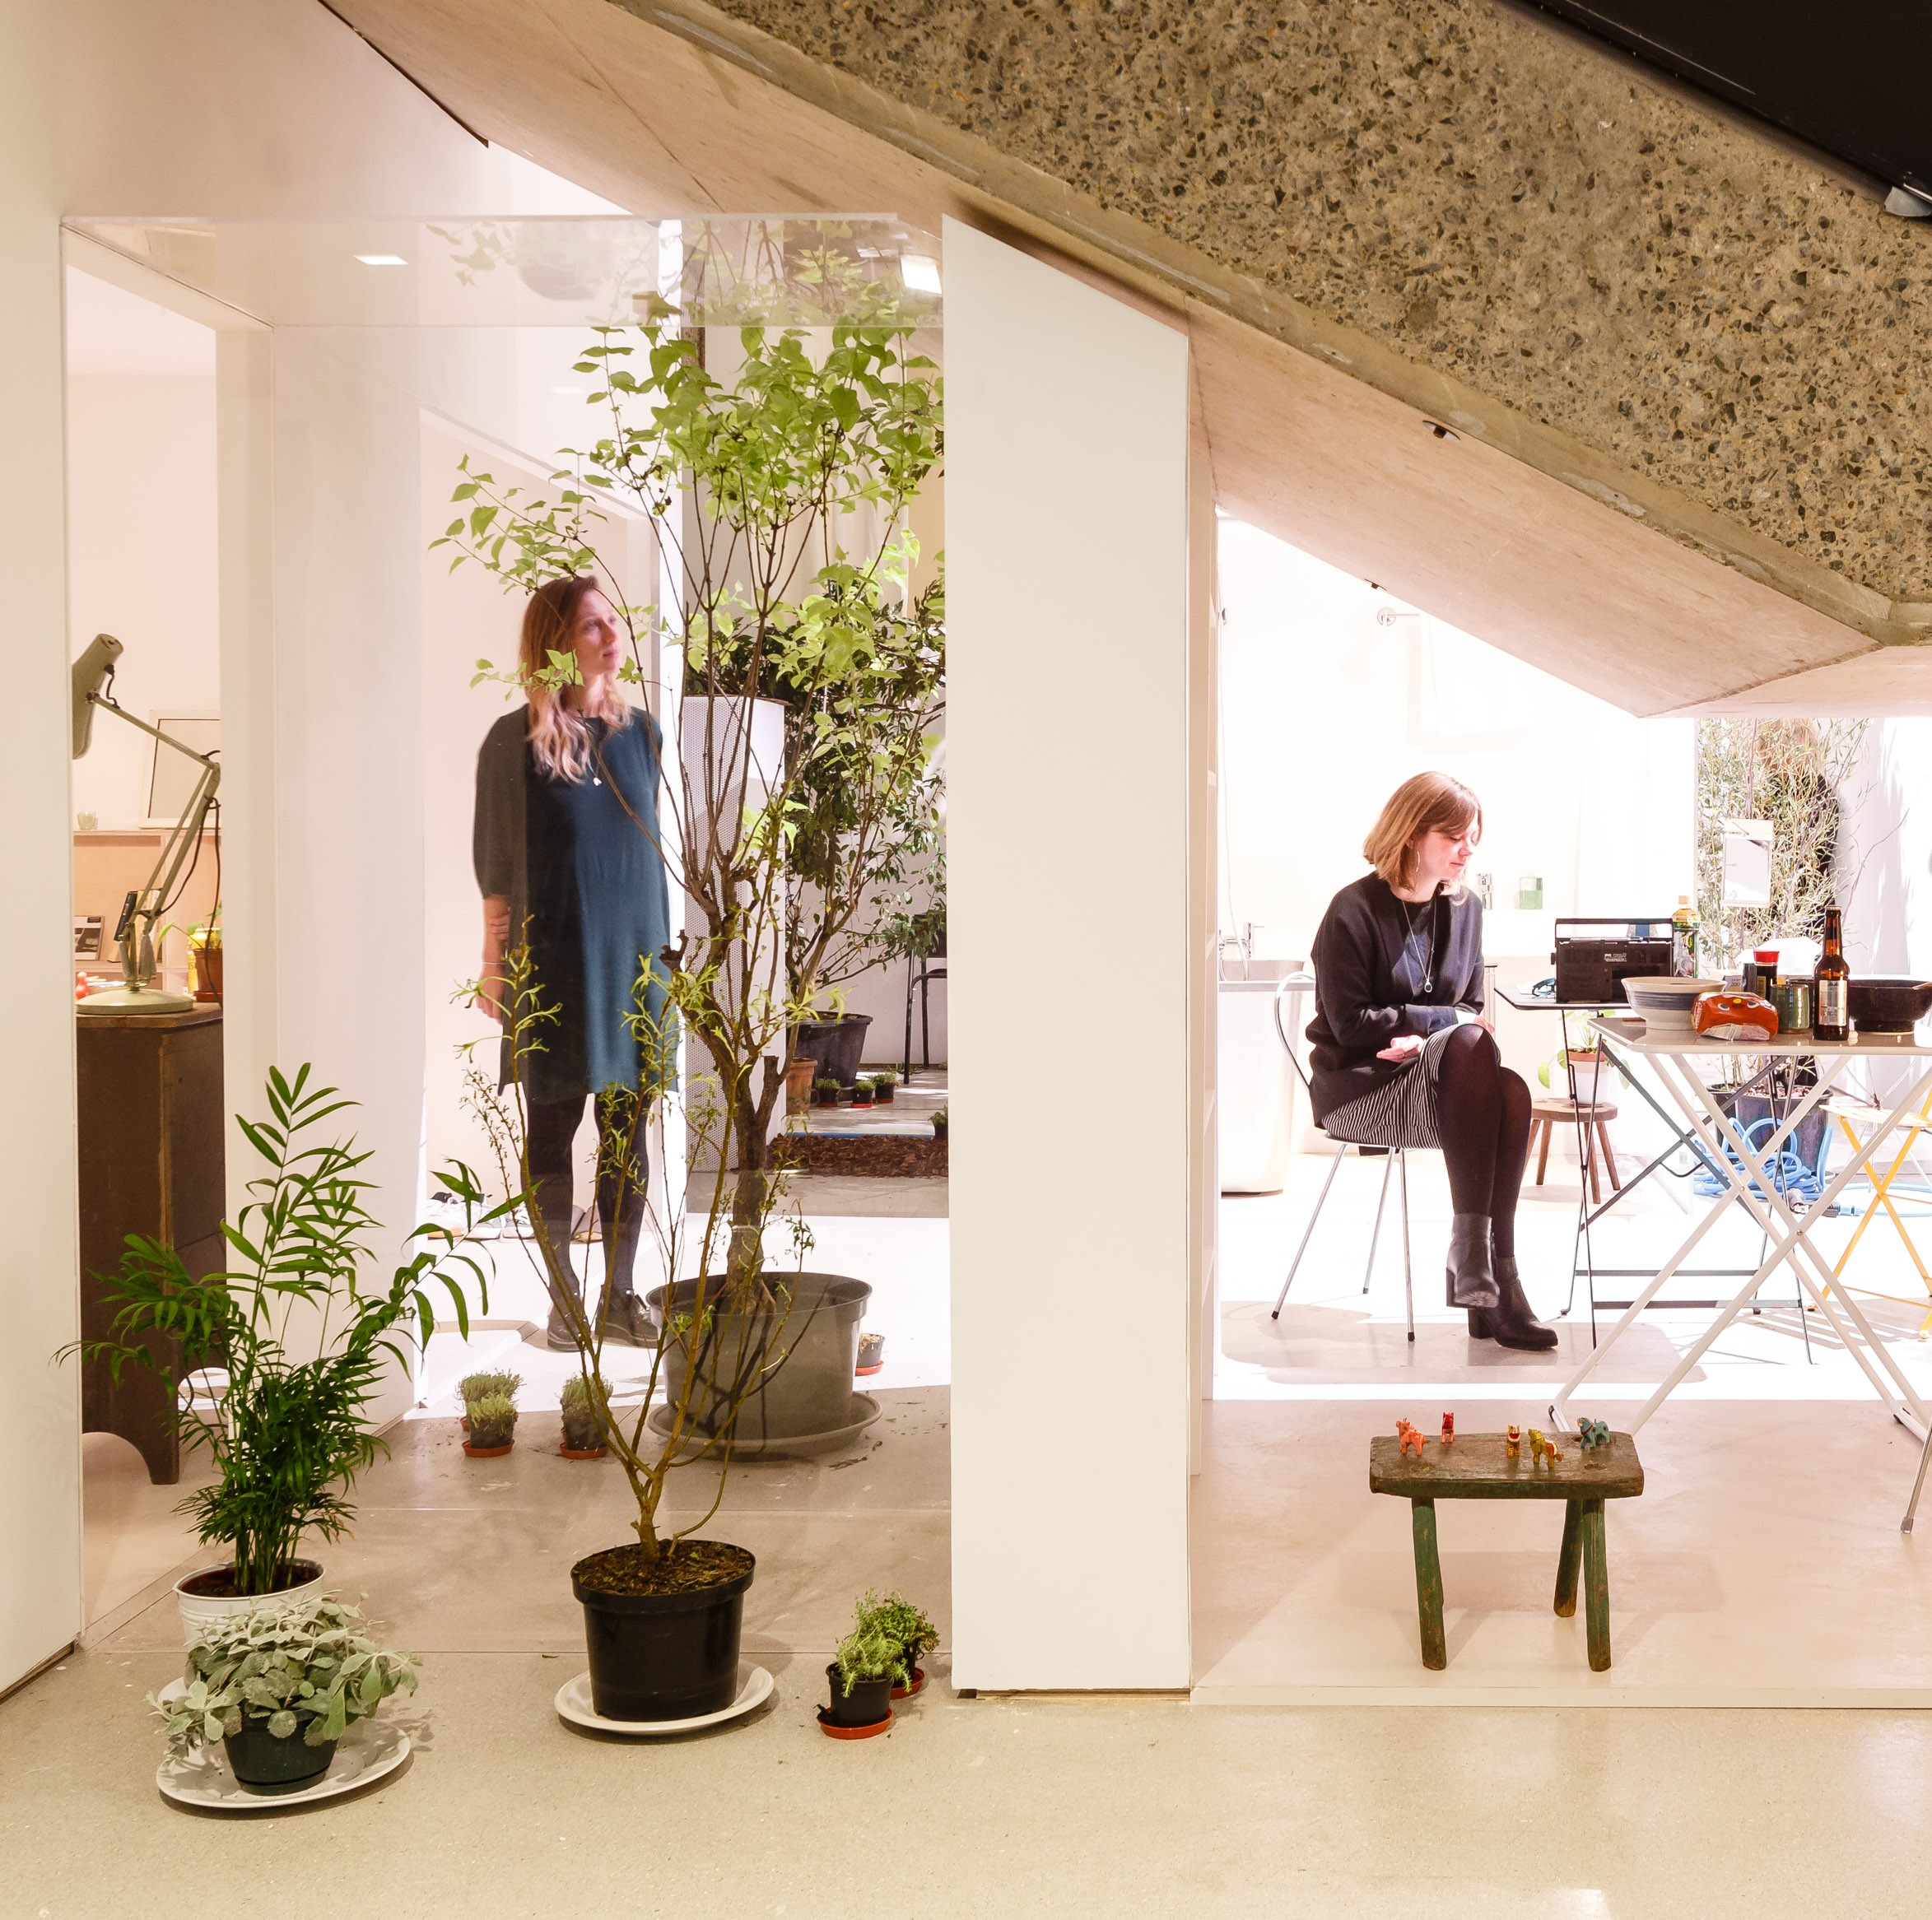 6. The Japanese House, Architecture and Life after 1945, Installation, Miles Willis, Getty Images (32)